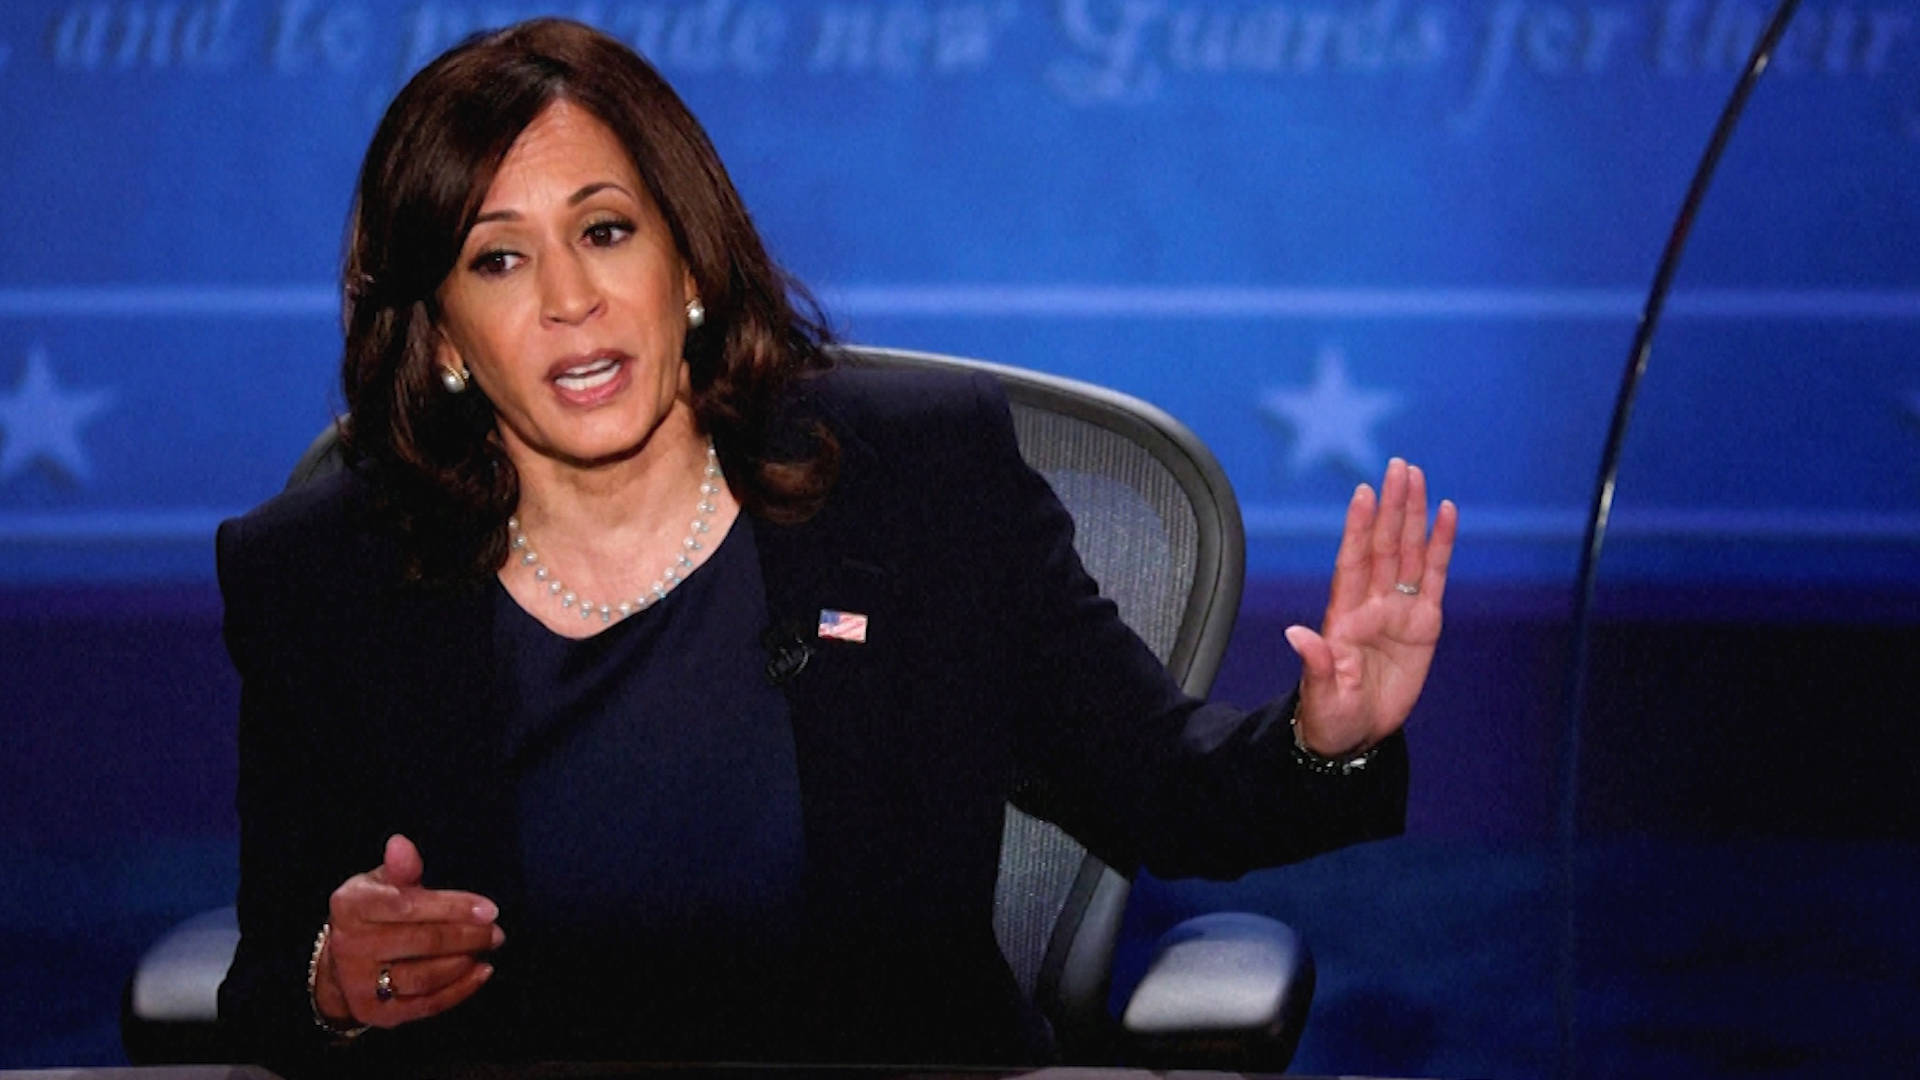 The Greatest Failure in Presidential History: Kamala Harris Slams Trump/Pence's Handling of COVID-19